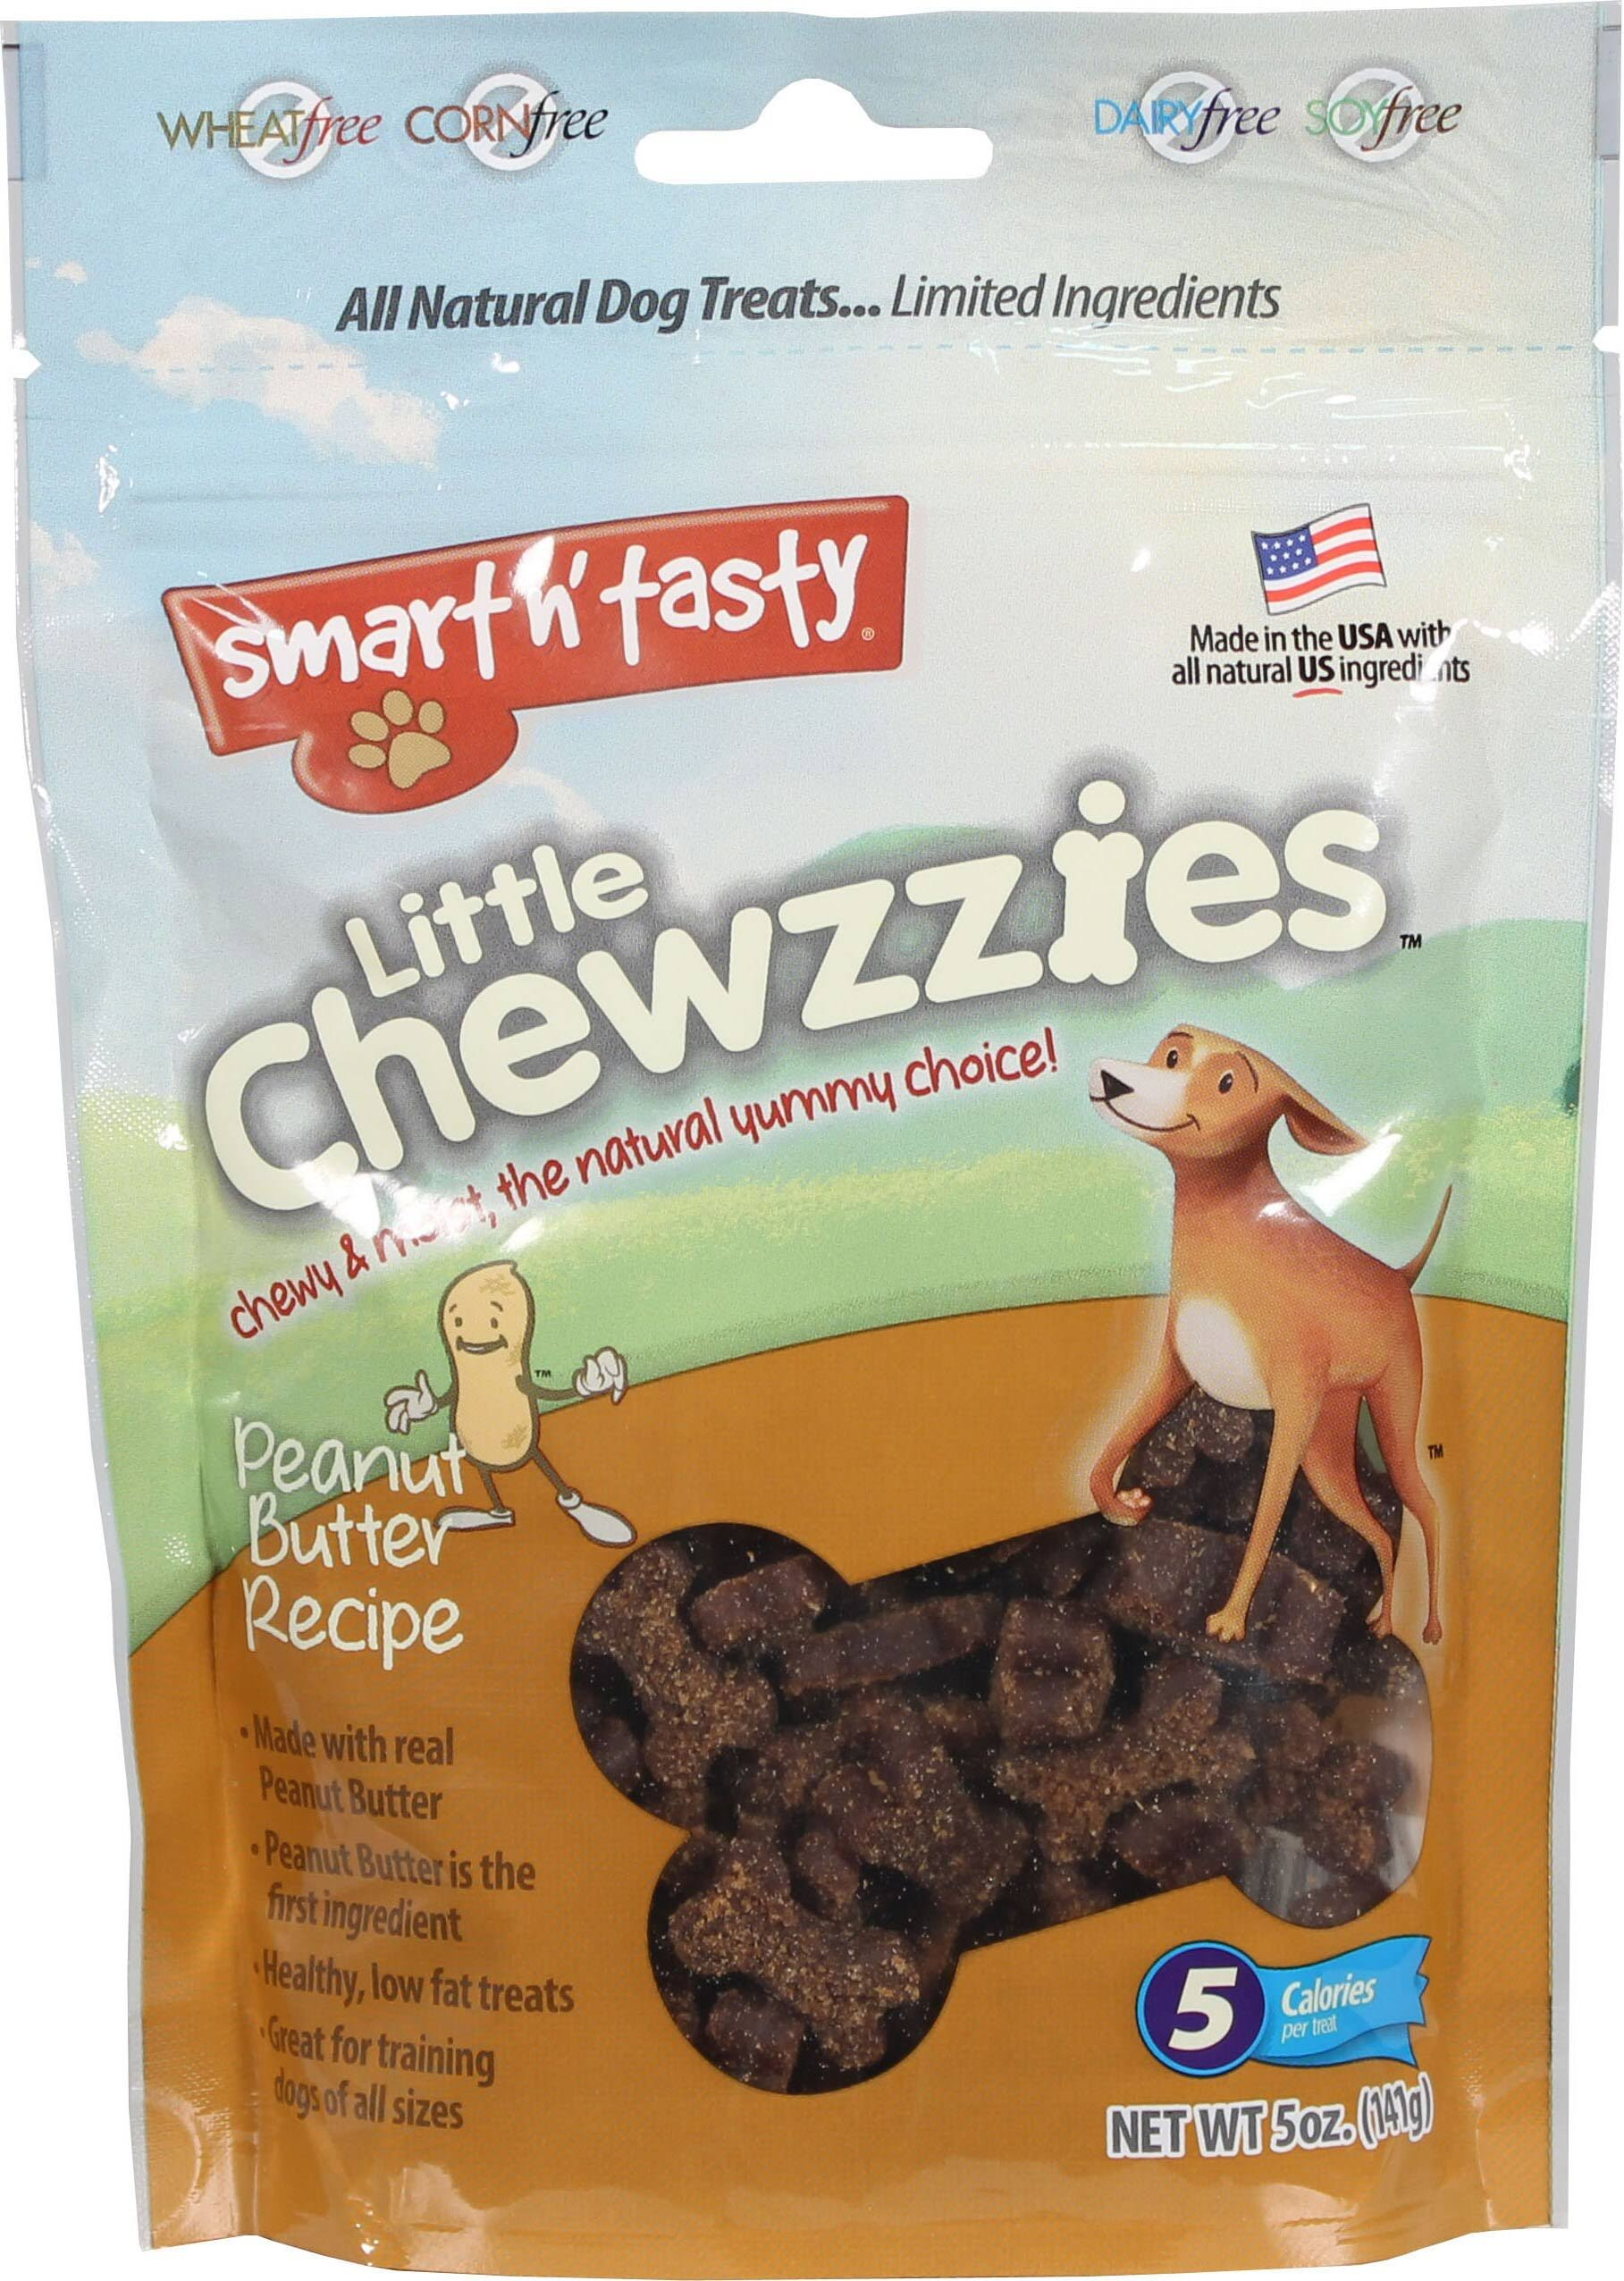 Smart N Tasty Little Chewzzies Dog Treats - Peanut Butter